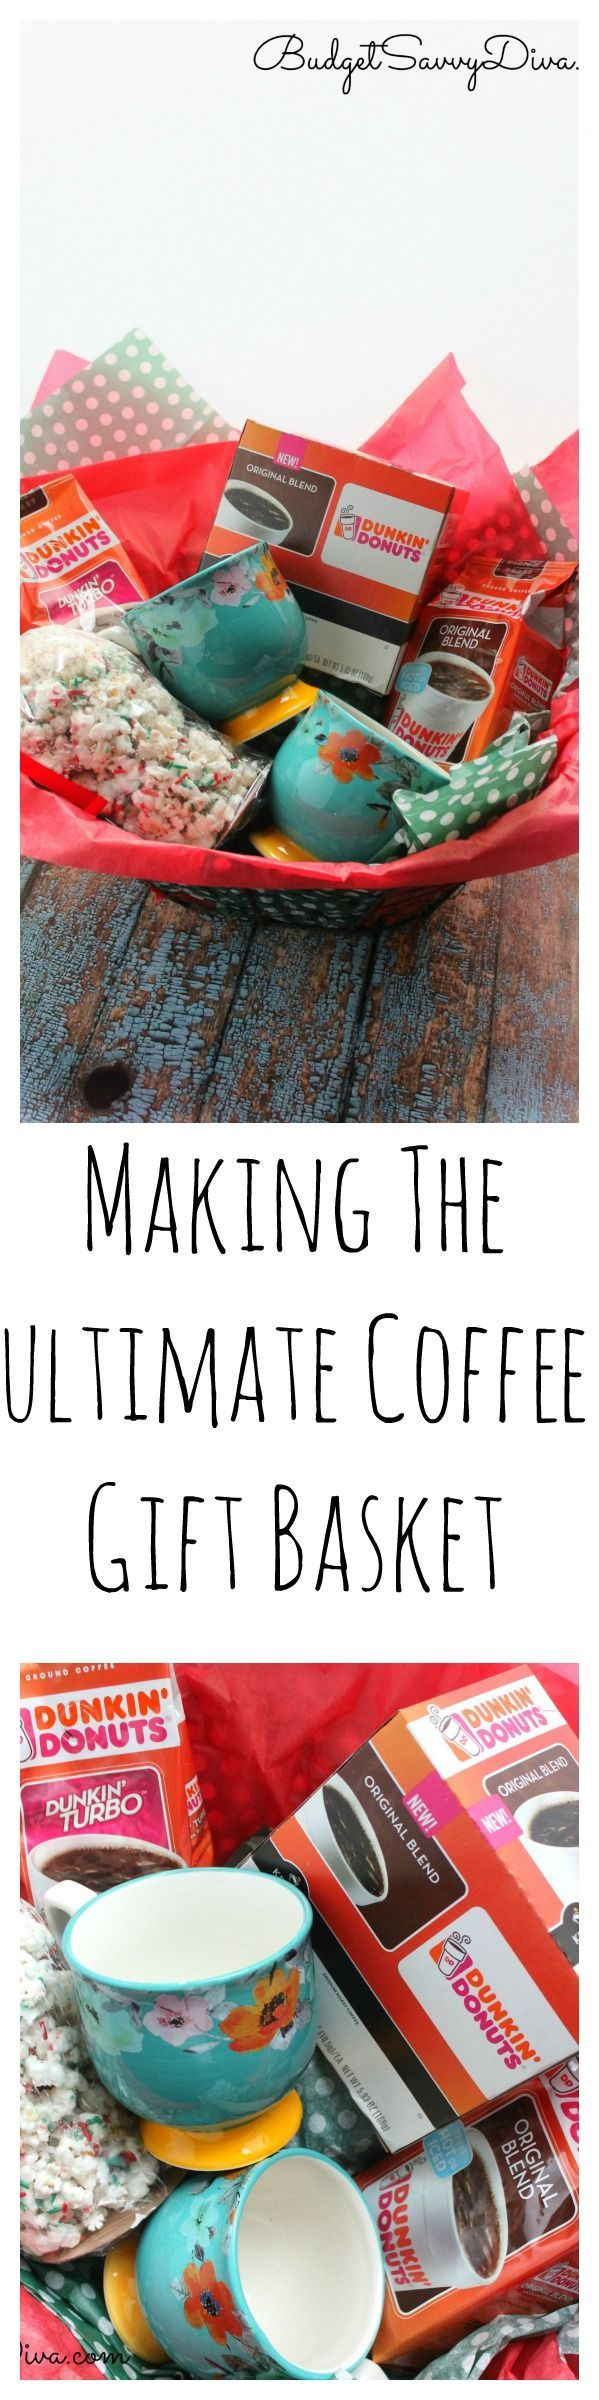 My husband loves coffee. I mean LOVES Dunkin' Donuts® Coffee – he seriously does not function till his 2 cups of coffee. We were trying to come up with an idea